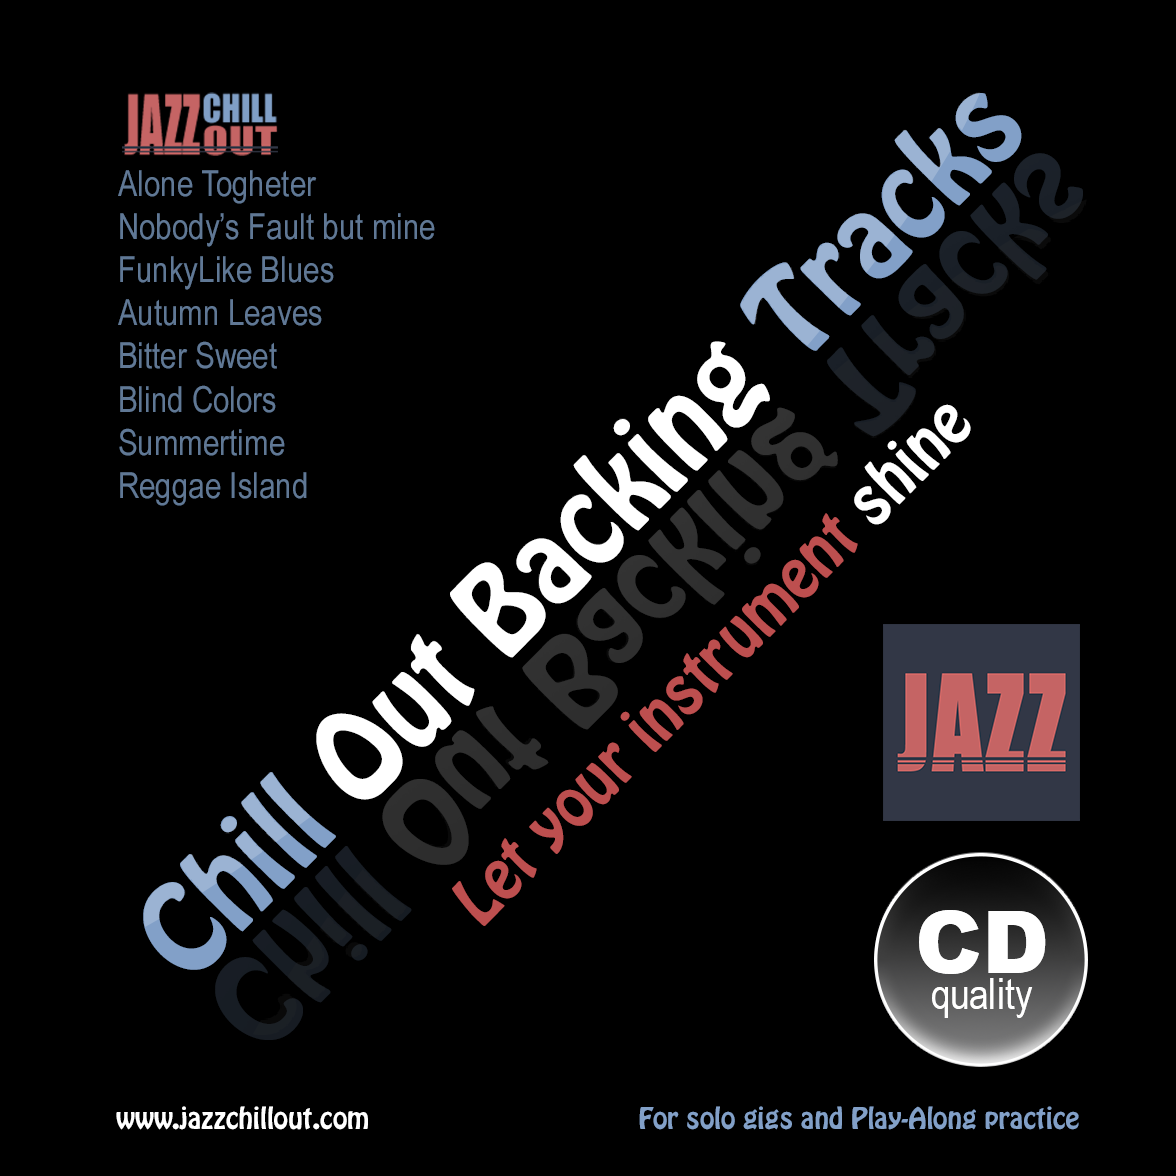 Chillout Backing Tracks to improvise